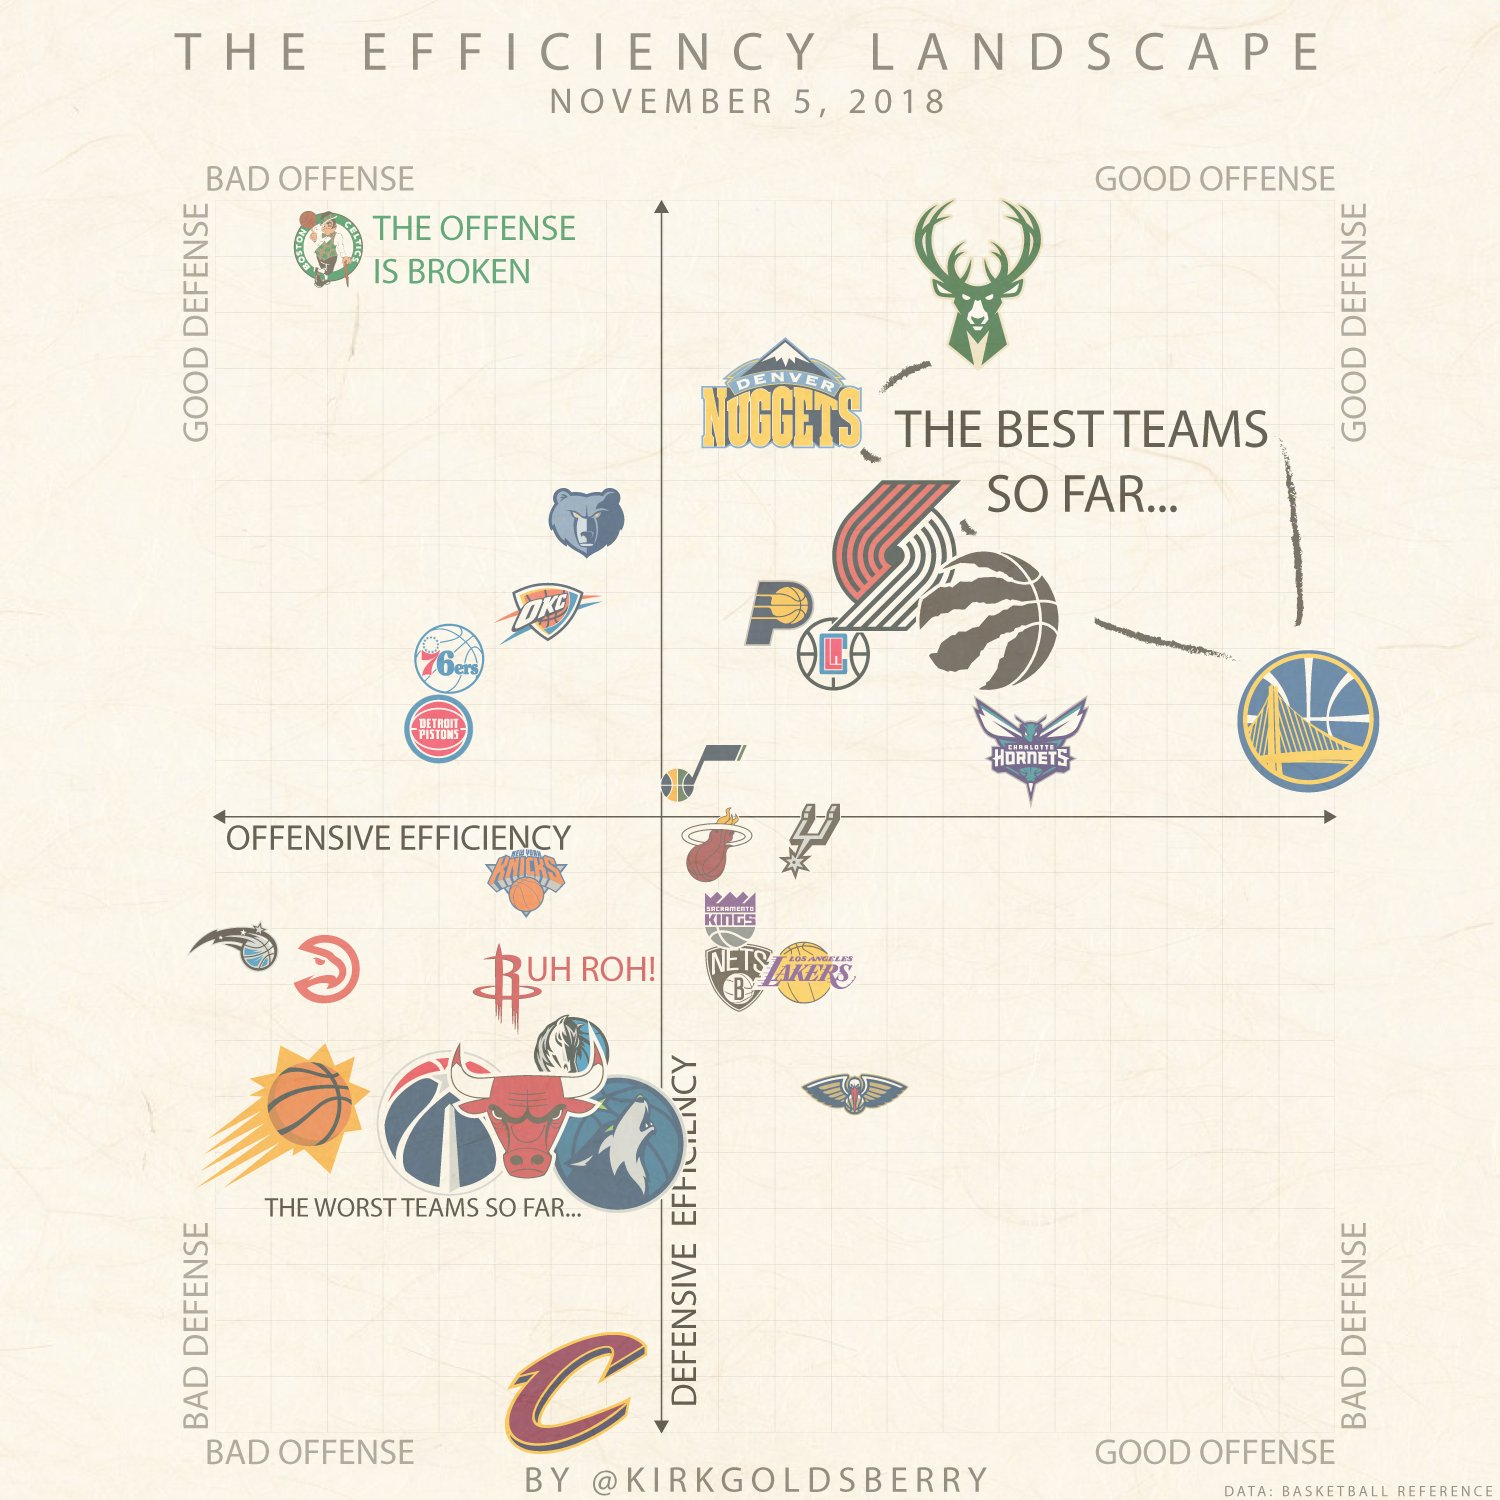 The Efficiency Landscape through 10 games. What jumps out? https://t.co/kJt0NqznoW